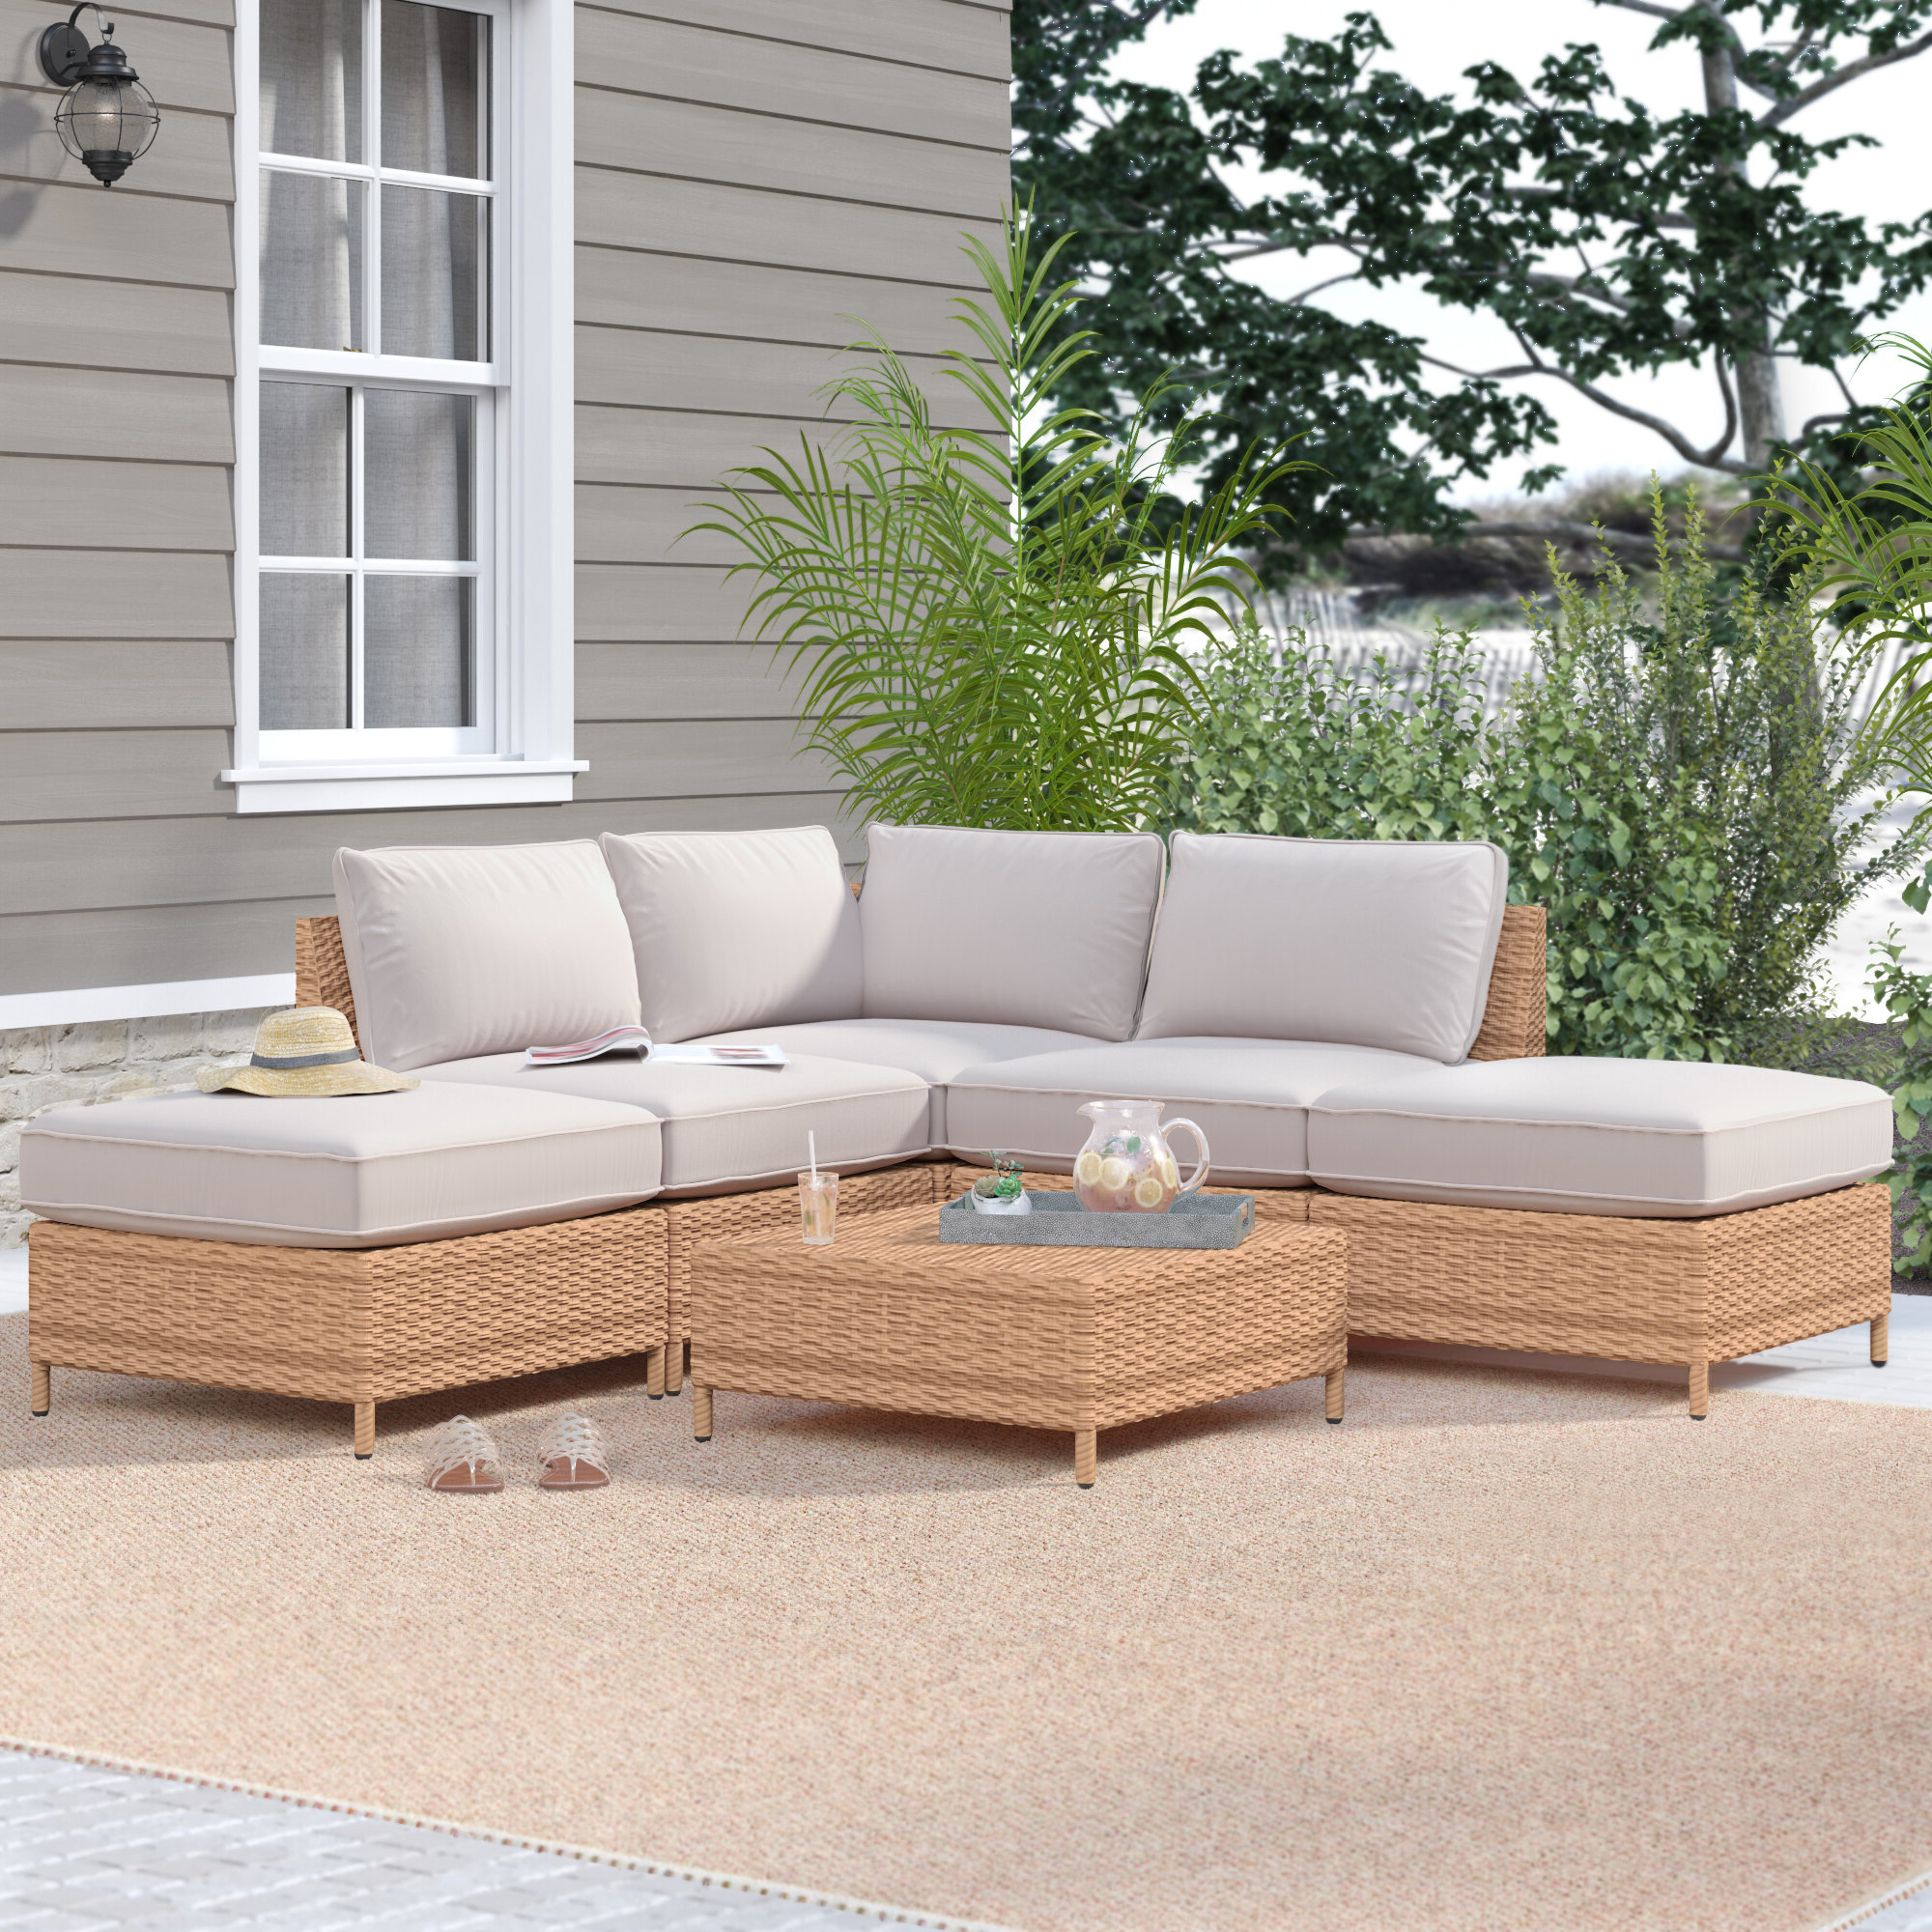 Well Known Tamworth 6 Piece Sectional Seating Group With Cushions Regarding Olinda 3 Piece Sectionals Seating Group With Cushions (View 16 of 25)